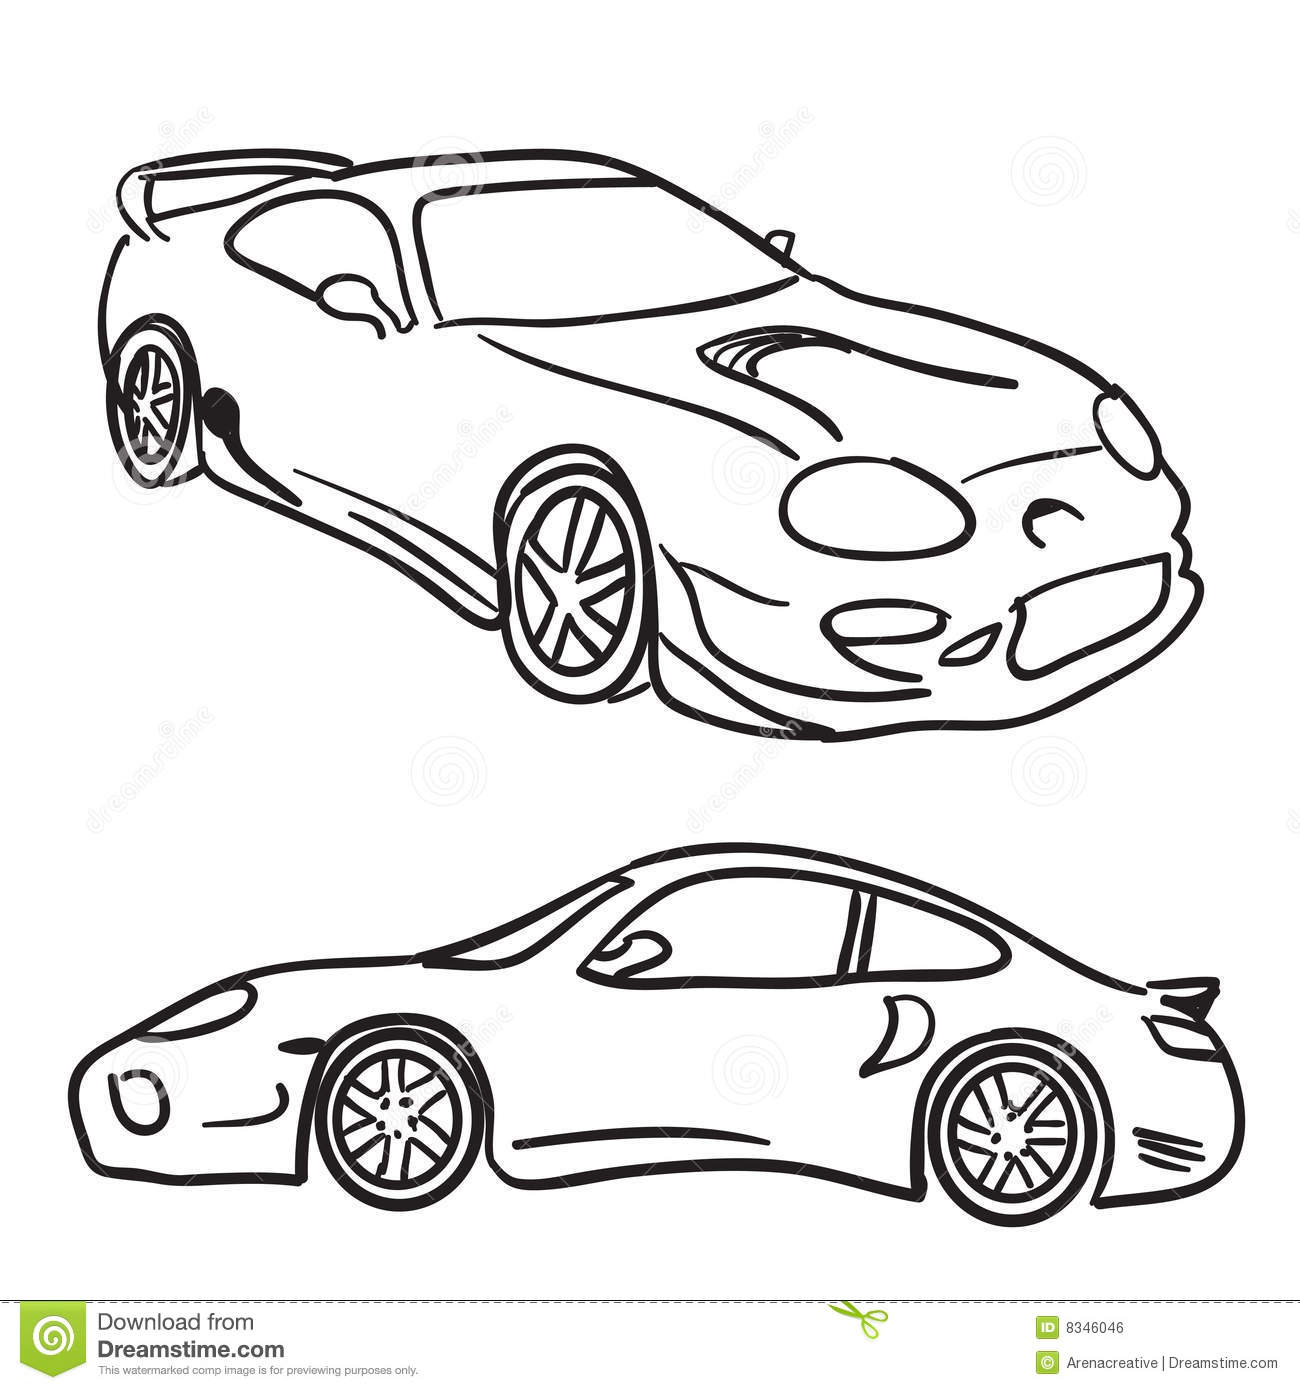 What Type Of Race Car Is Lightning Mcqueen